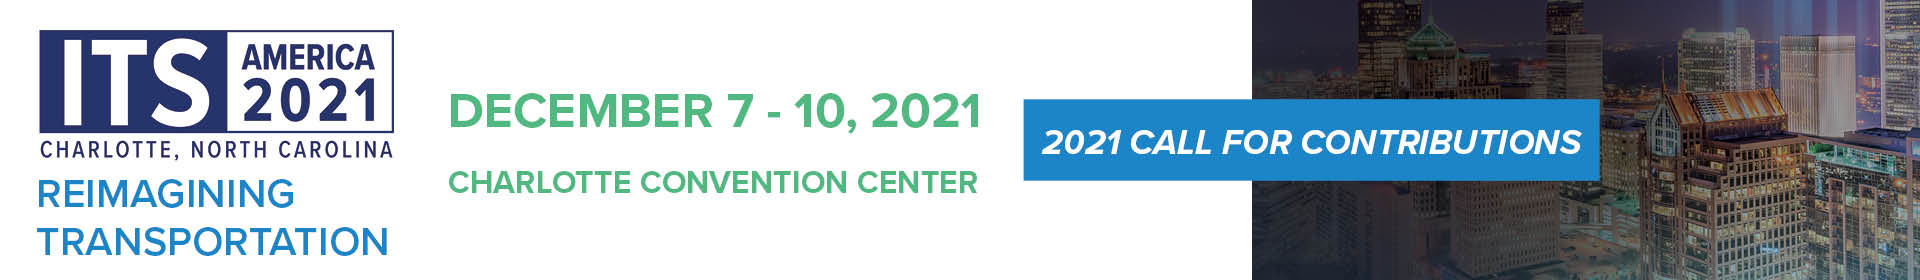 ITS America 2021 Annual Meeting Event Banner